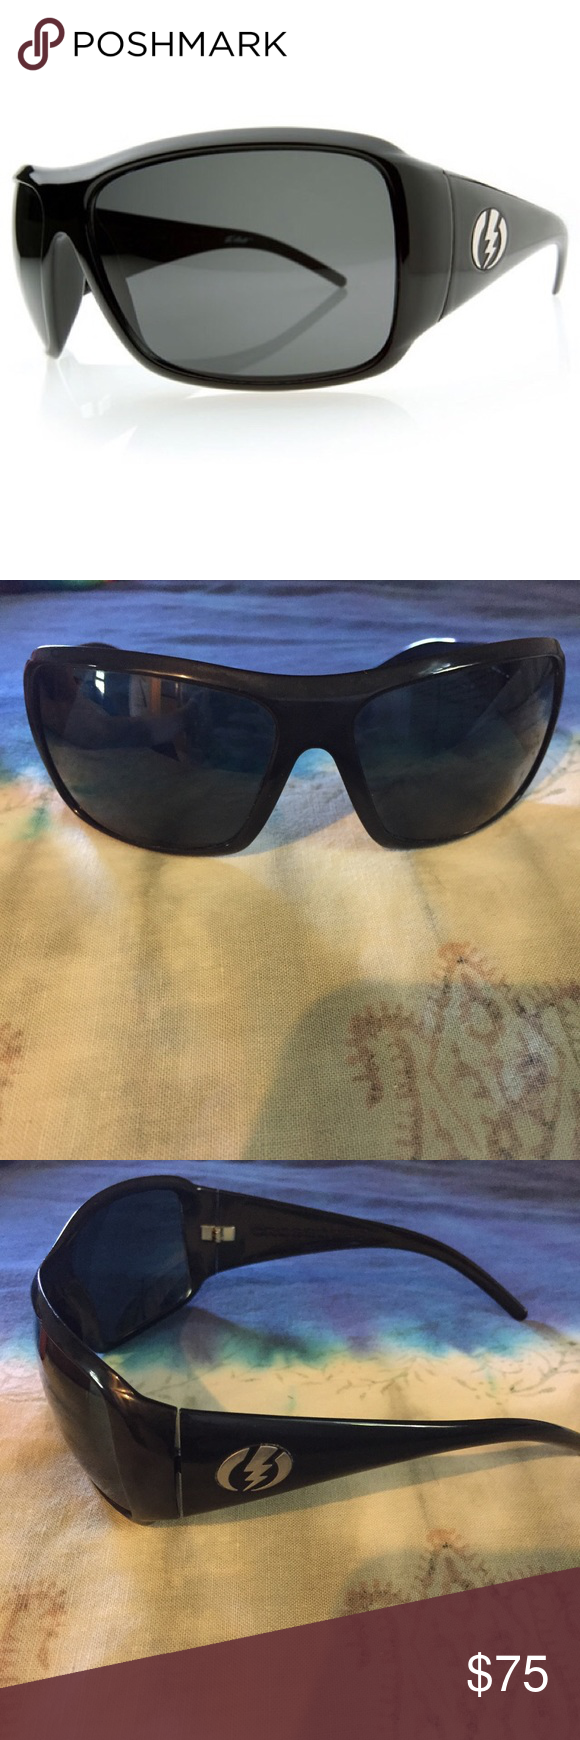 Electric Crossover Sungles Sunnies 100 Uv Protection Gloss Black Comes With Little Pouch Good Condition